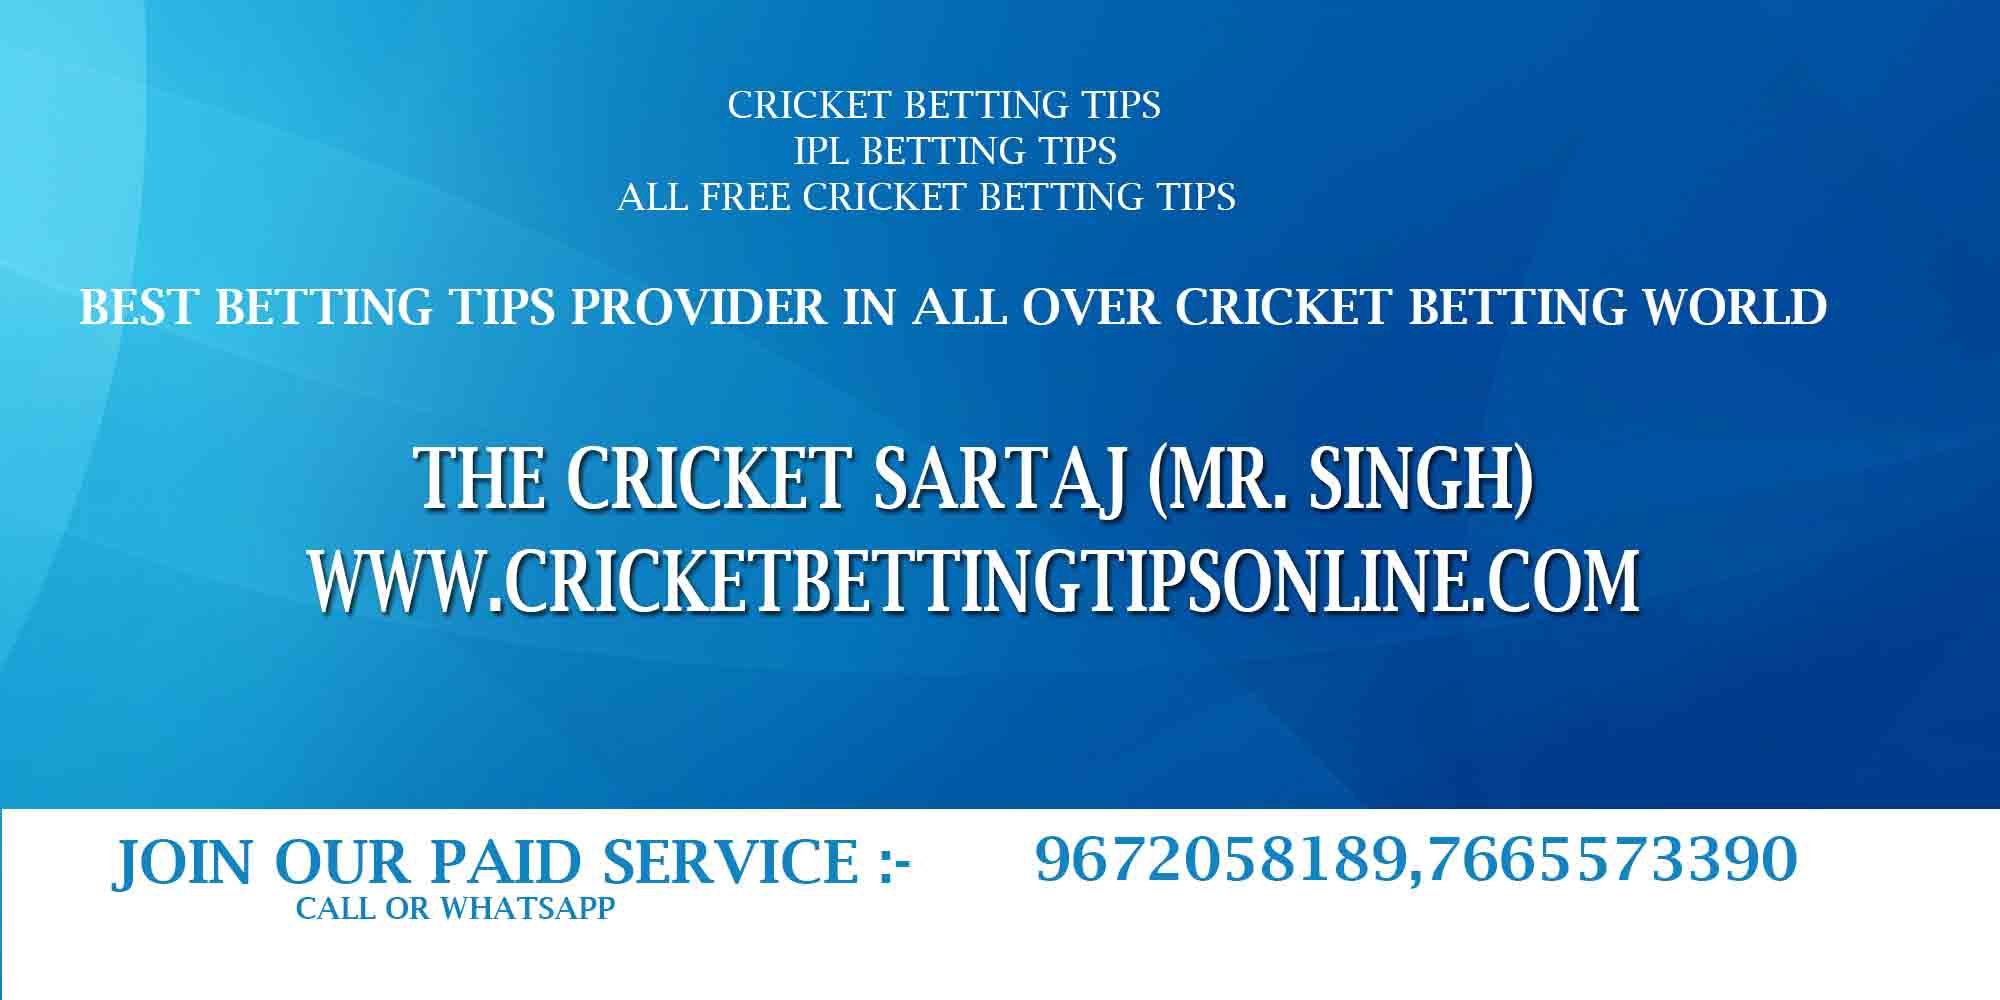 Cricket betting tips free ipl premier sports betting bet and win ticket status